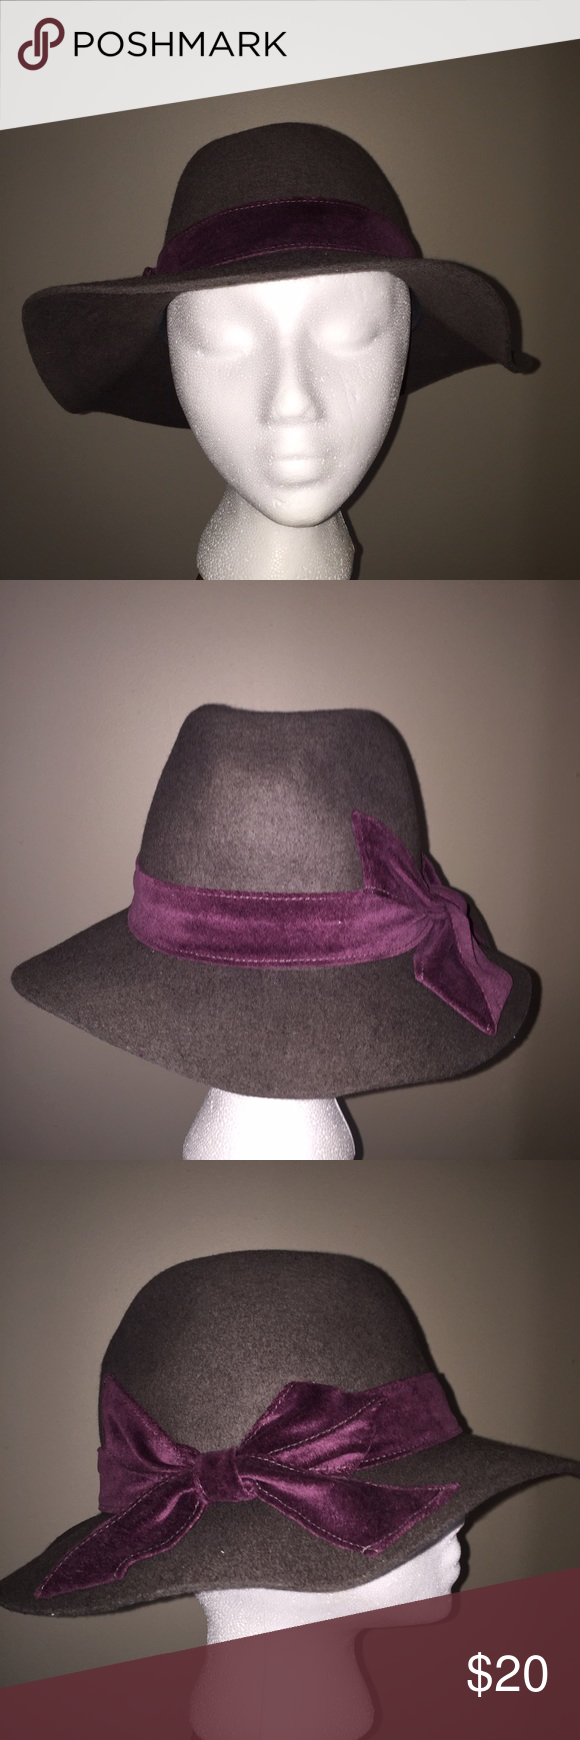 Cynthia Rowley floppy hat Grey with cute plum bow. No trades.  See my FAQ's if you have general questions.  Happy Poshmarking! Cythia Rowley Accessories Hats